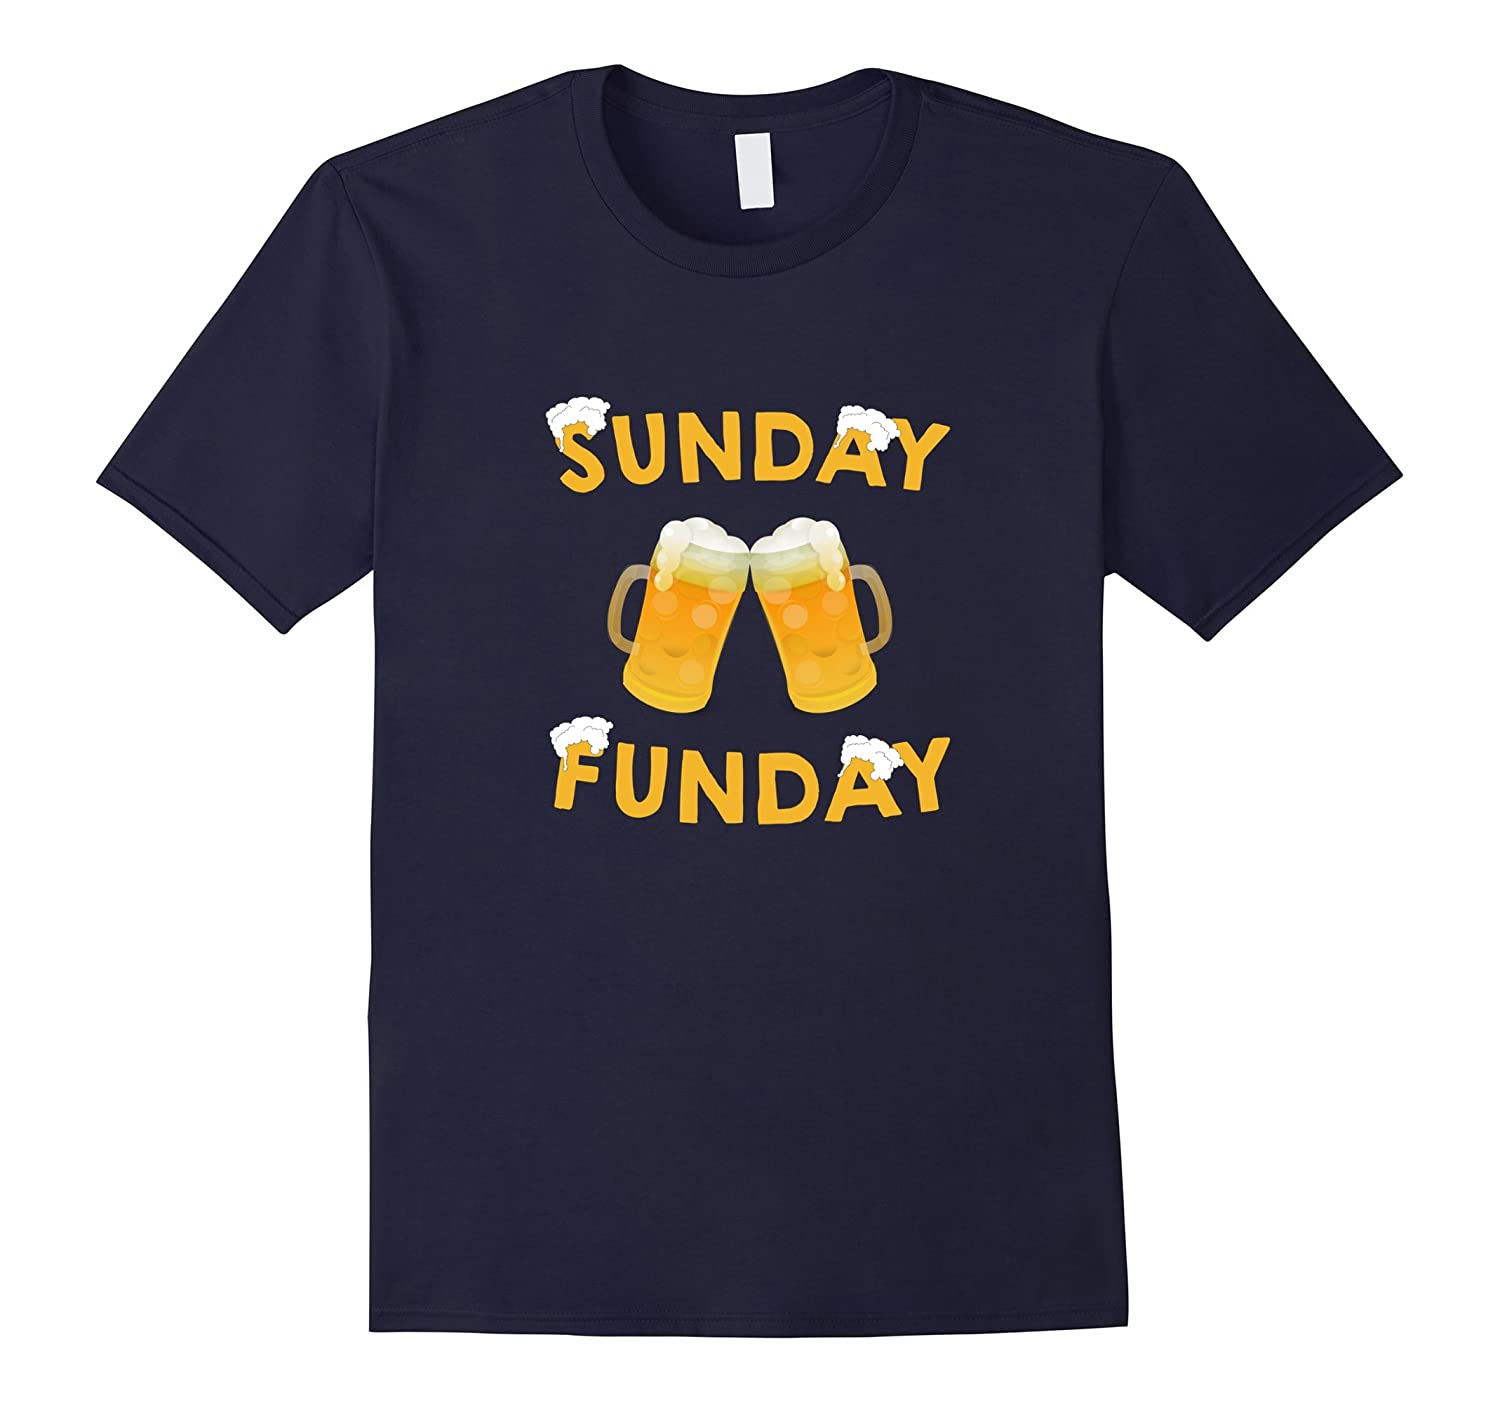 Sunday Funday T Shirt - Funny Men's Drinking Beer-Art